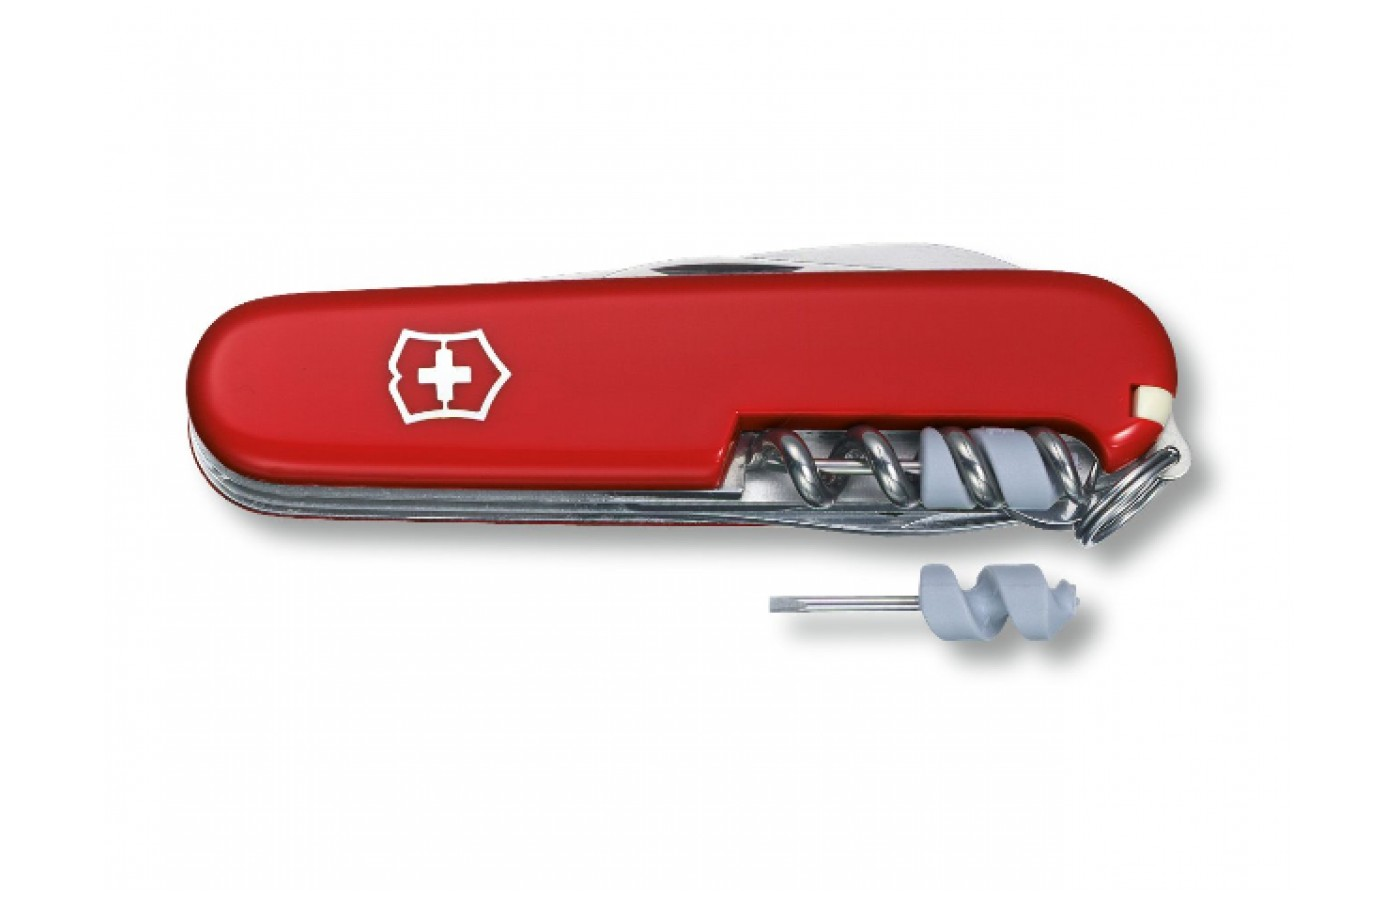 The Victorinox Climber is a traditional style small swiss army knife.